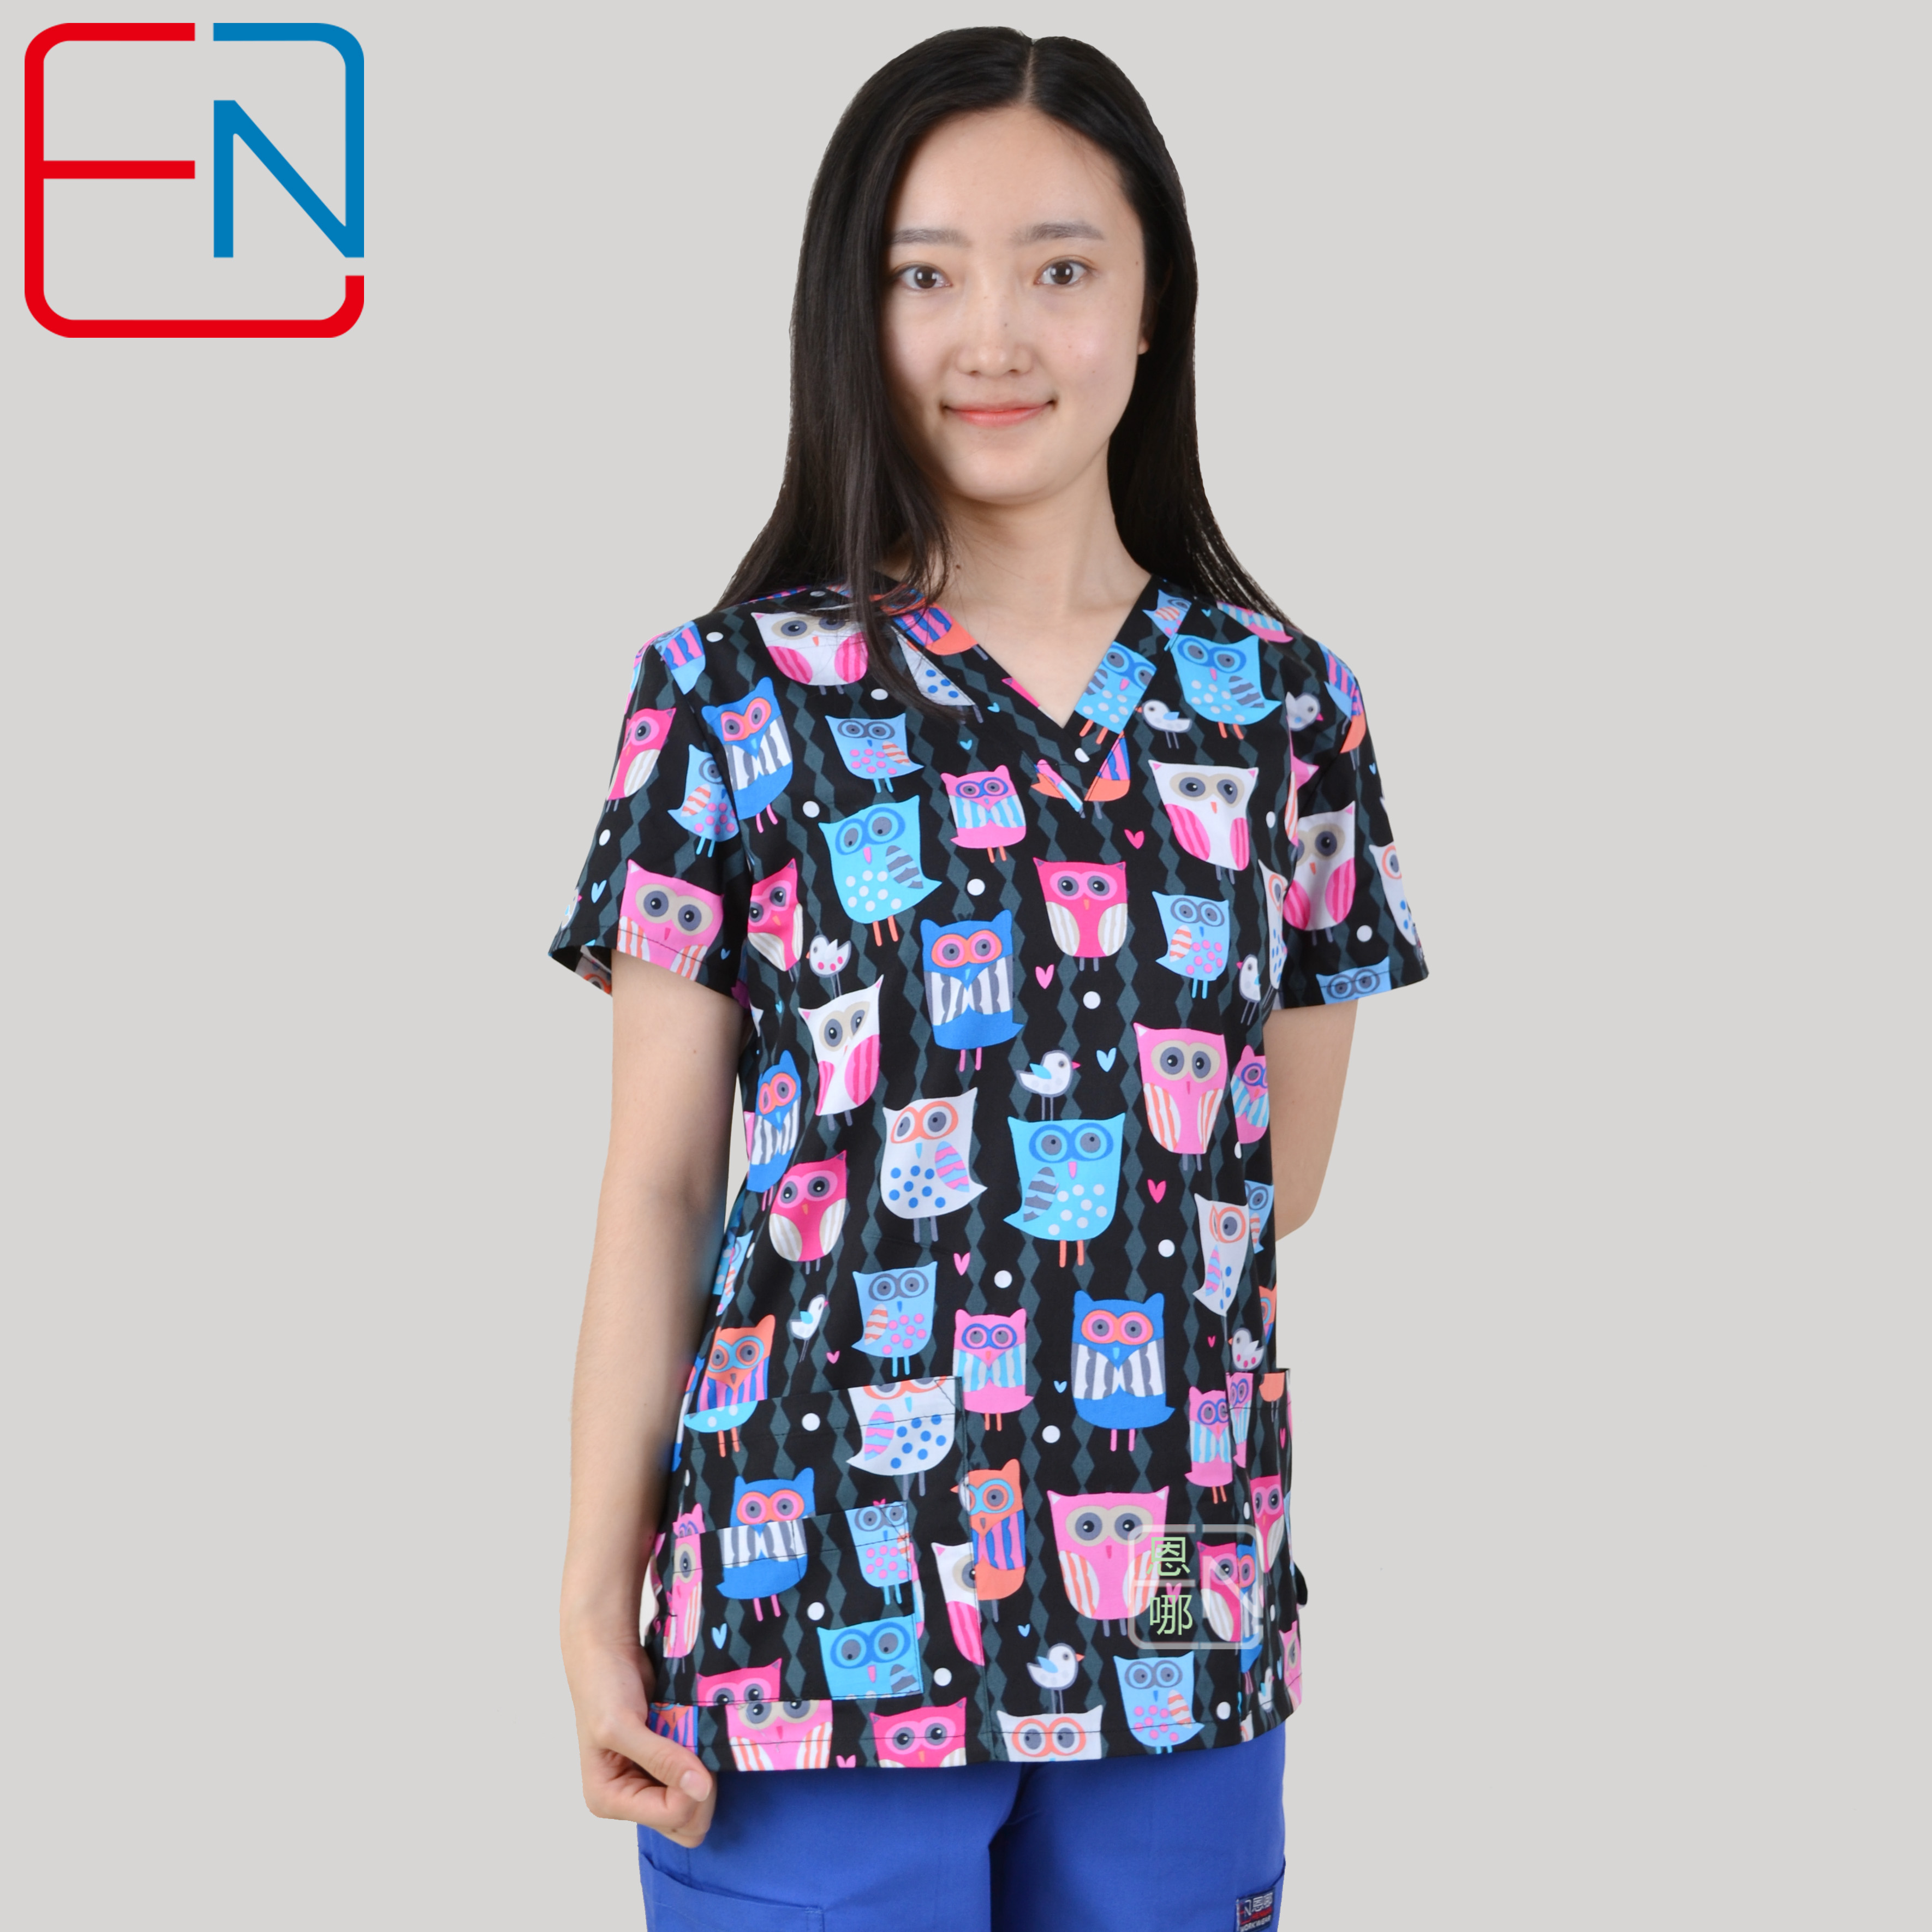 Brand medical scrub tops for women surgical scrubs,scrub uniform in 100% print cotton Chengse maotouying-in Scrub Tops & Bottoms from Novelty & Special Use